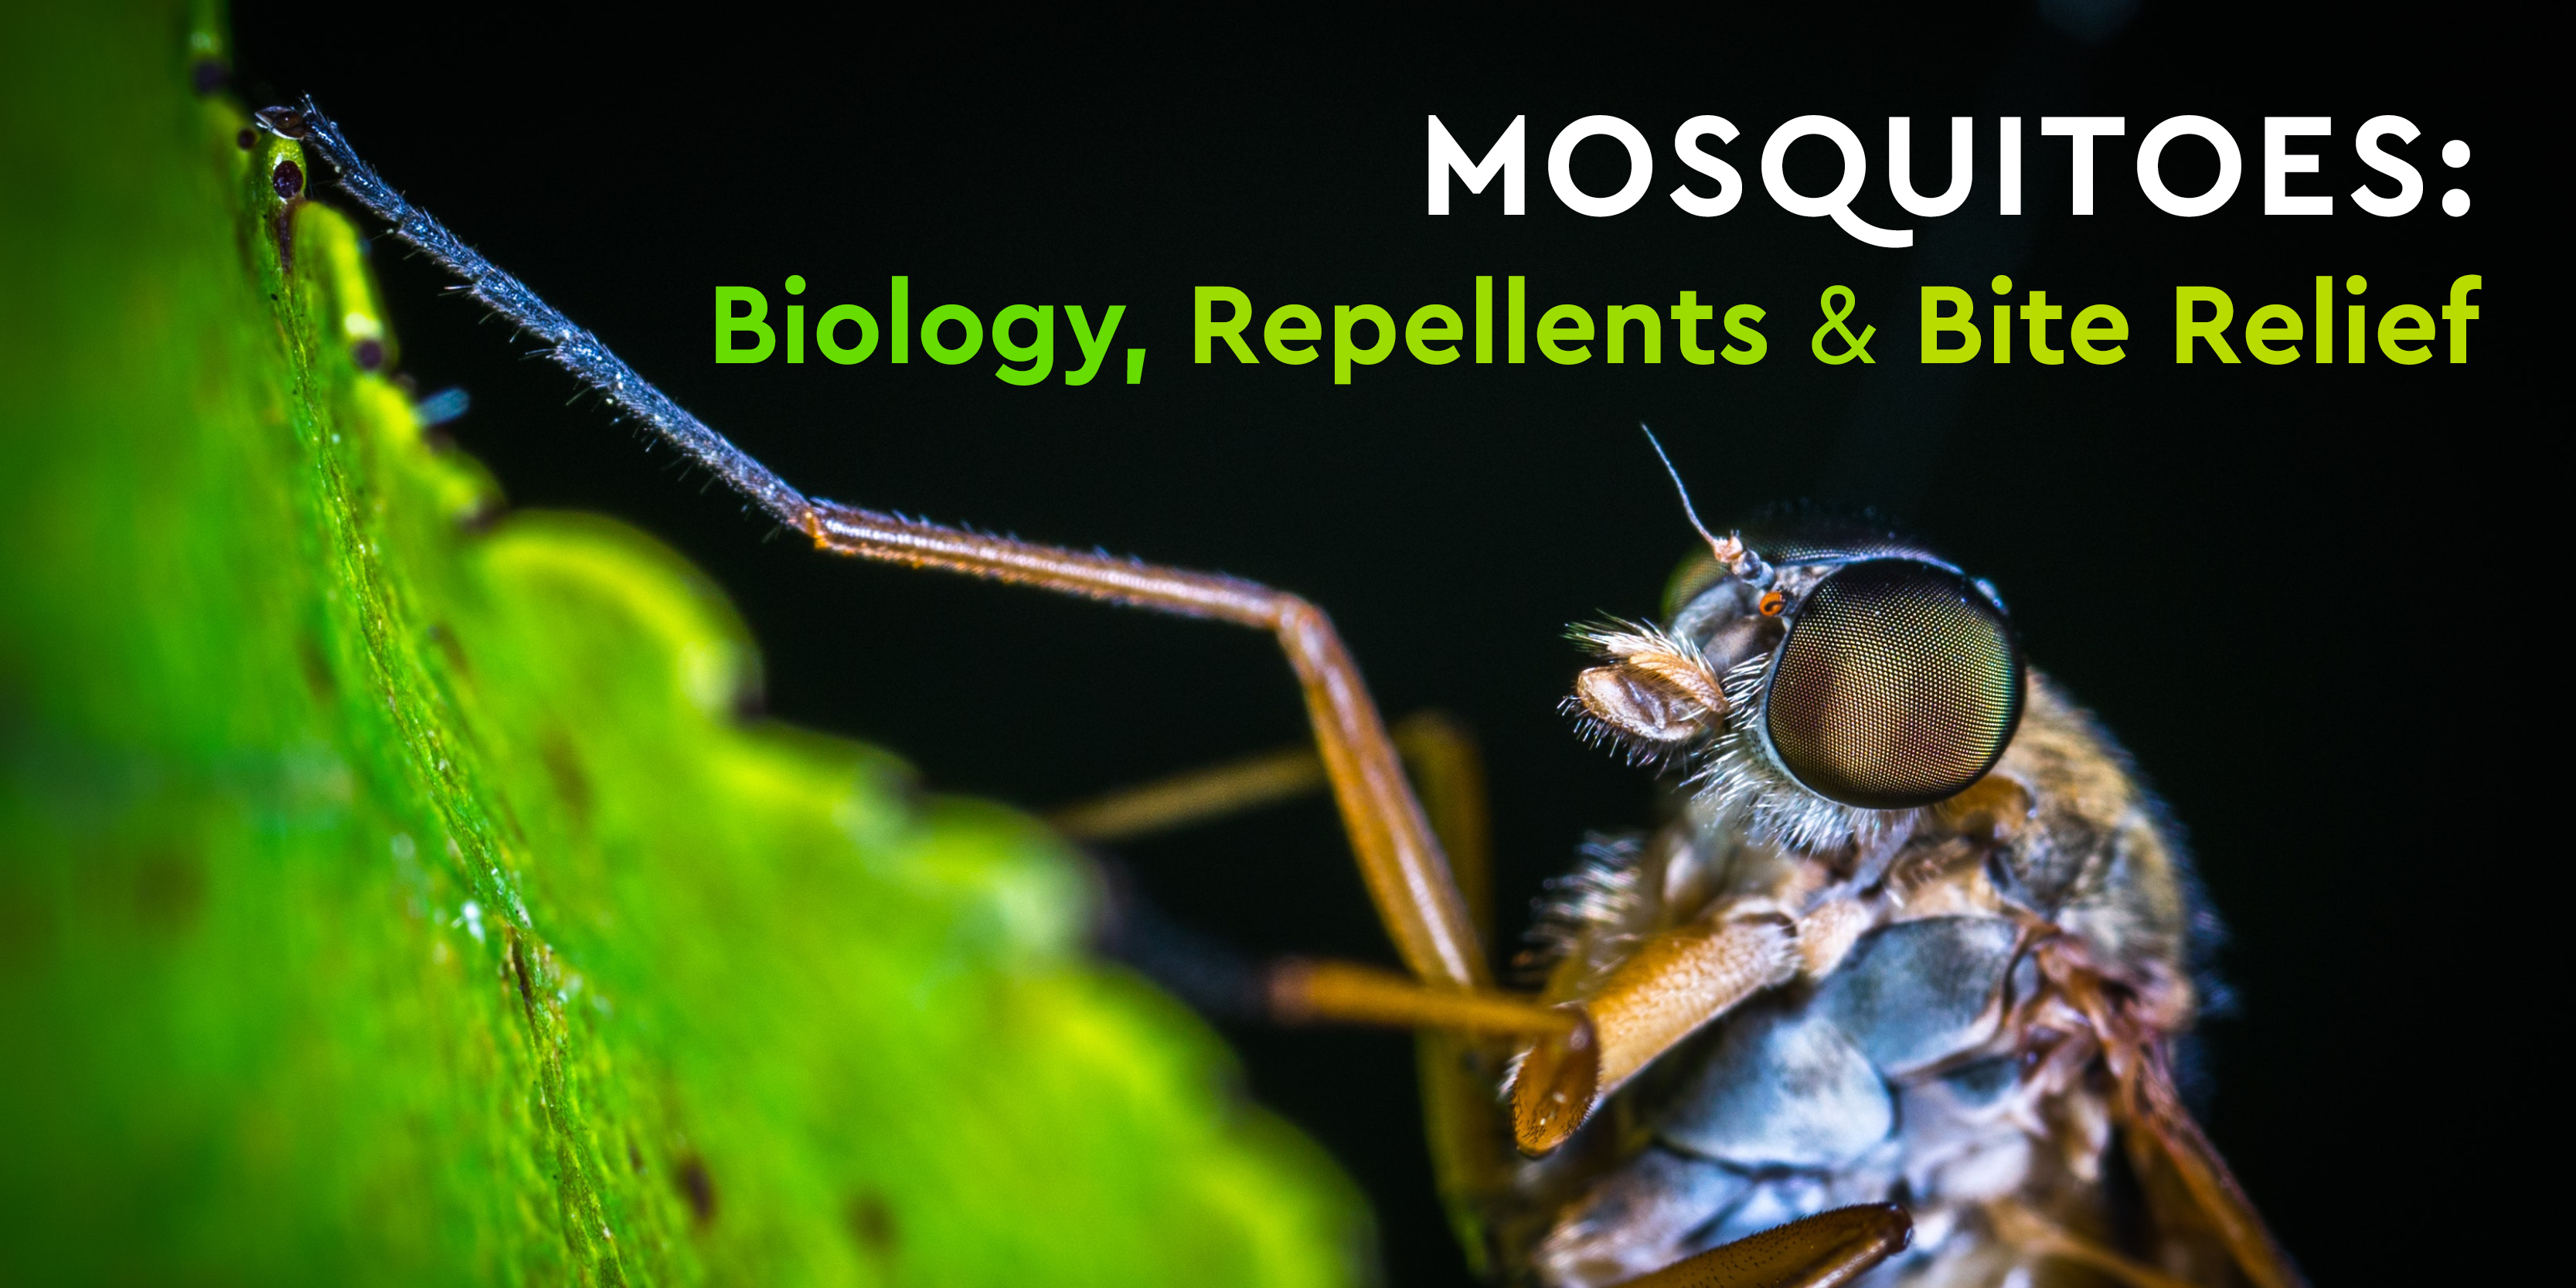 Mosquitoes Biology, Repellents & Bite Relief